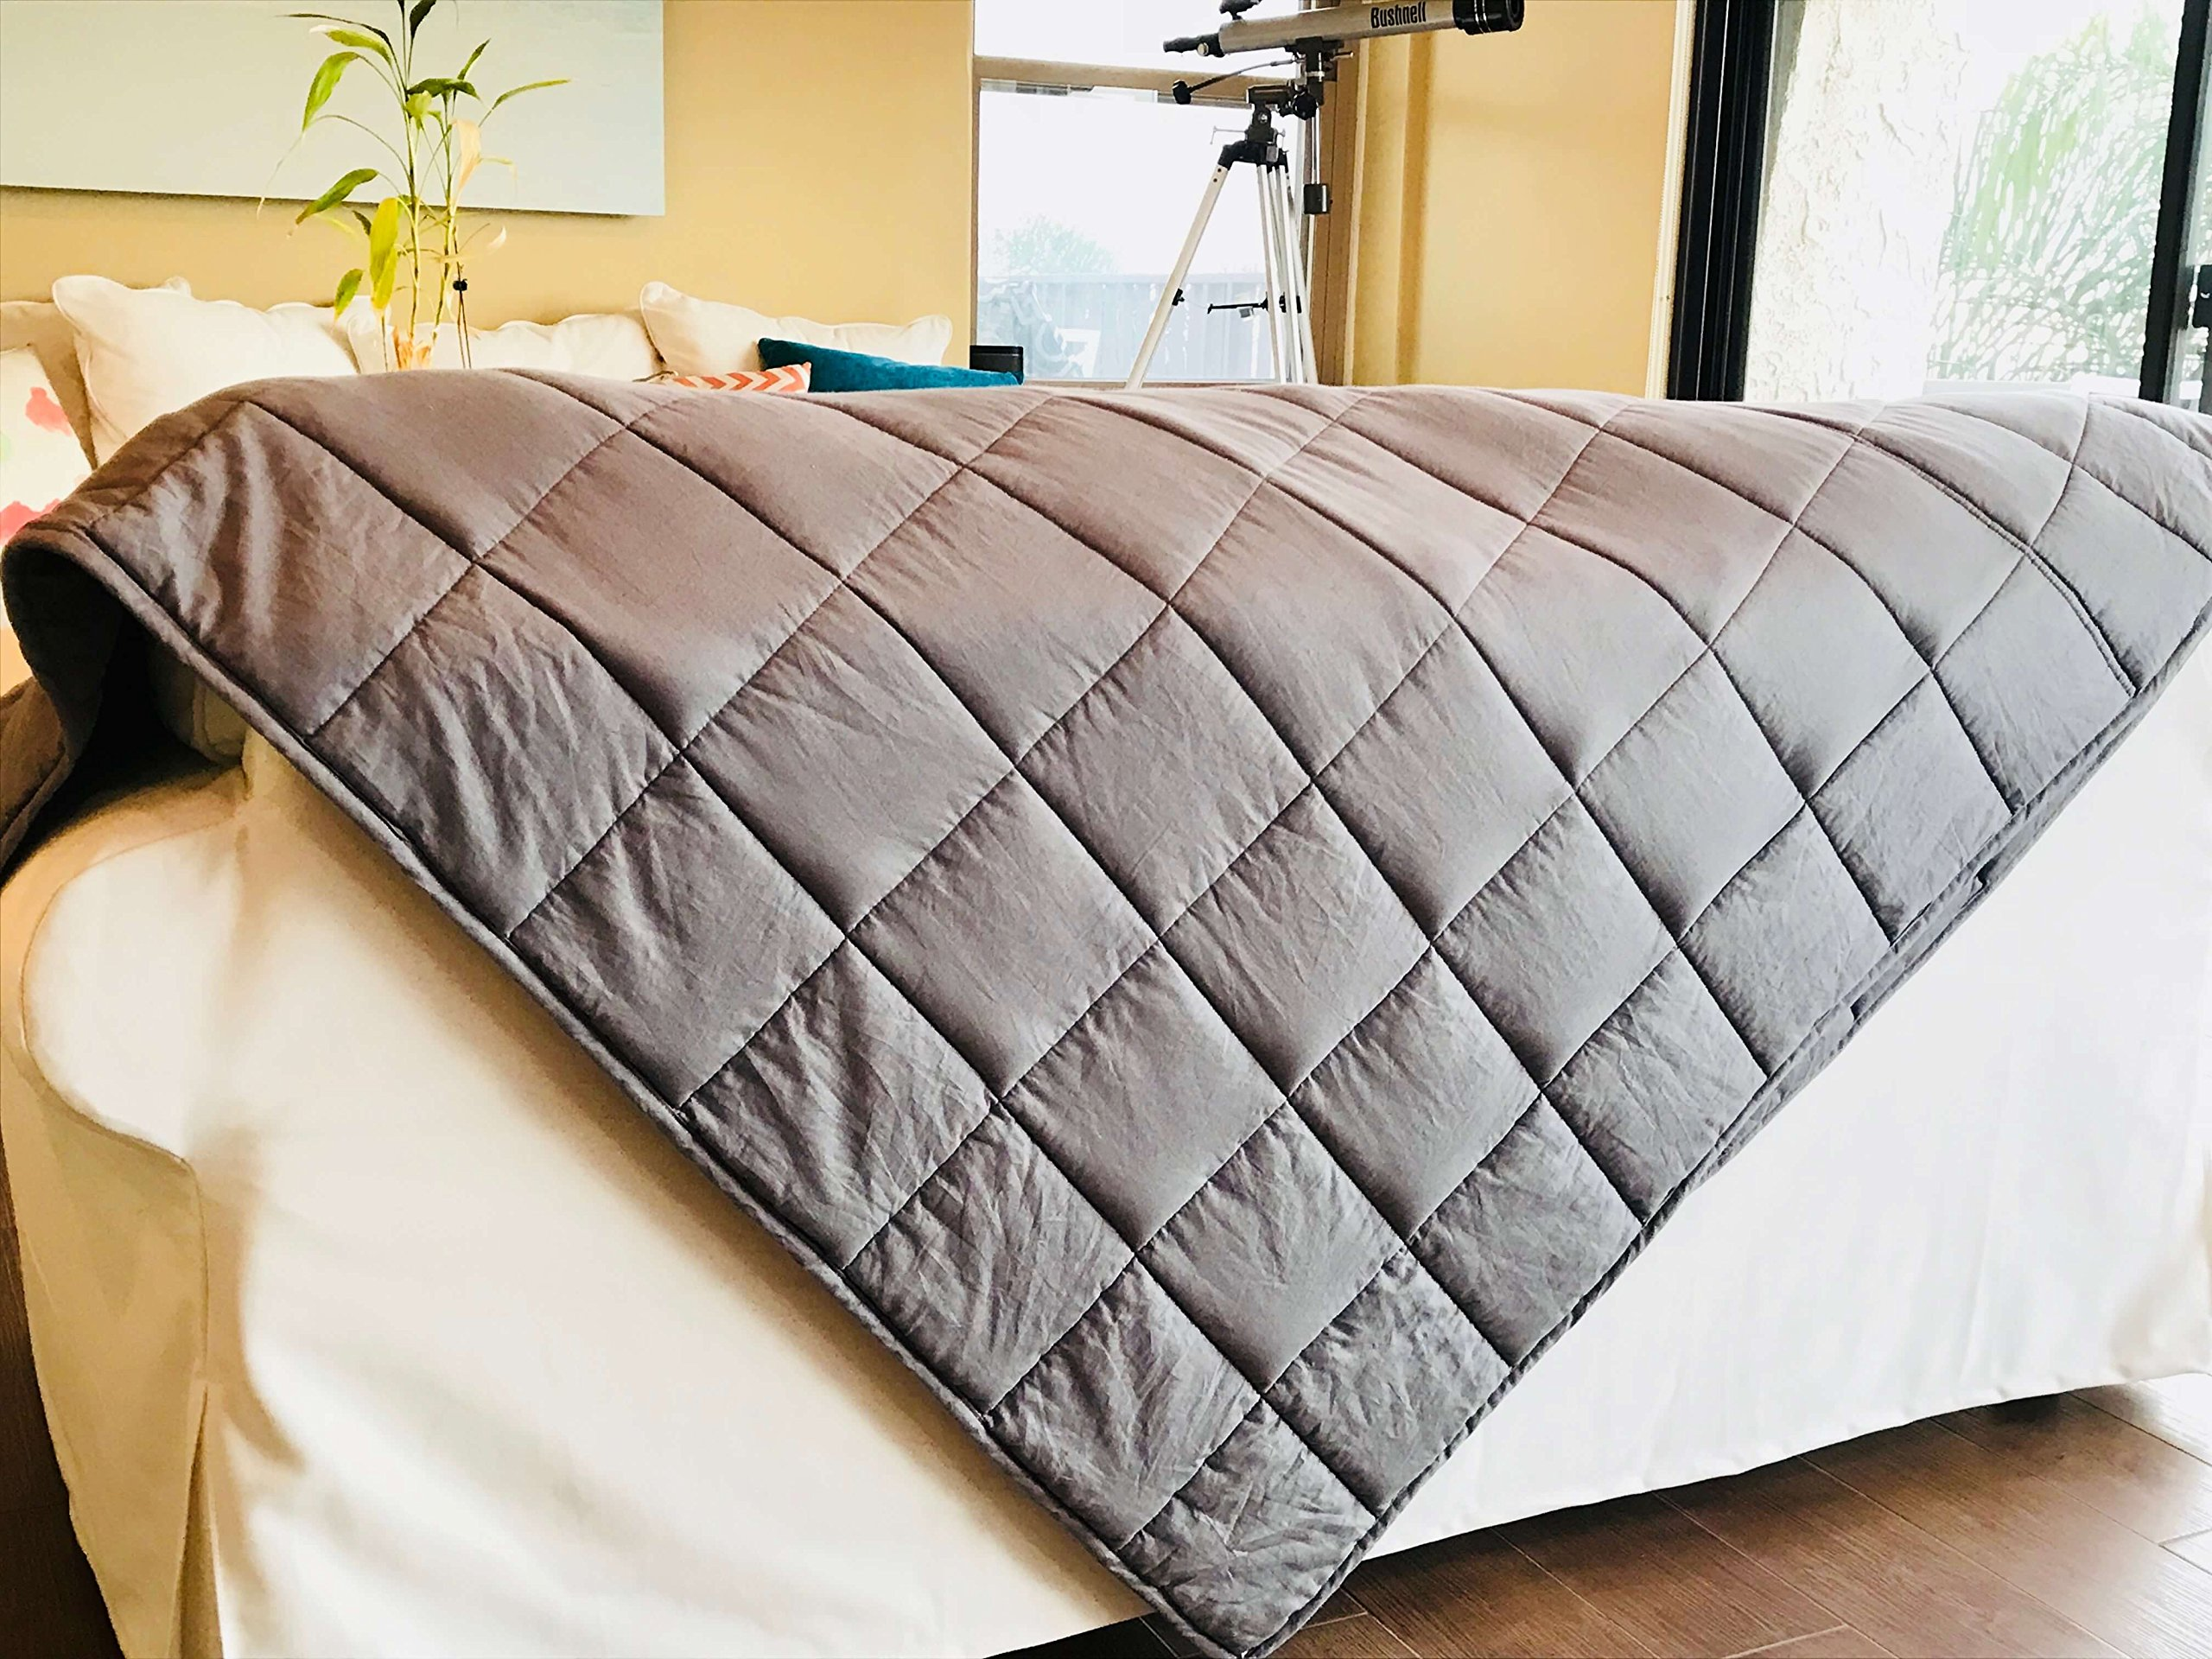 15lb Premium Weighted Blanket for Adults & Kids - Oversized 60''x 80'' Design – Let Gravity Help You Achieve a Deeper Sleep – Relief from Stress, Anxiety, Insomnia, Sensory Disorder, Autism, Depression by HomeSmart Products